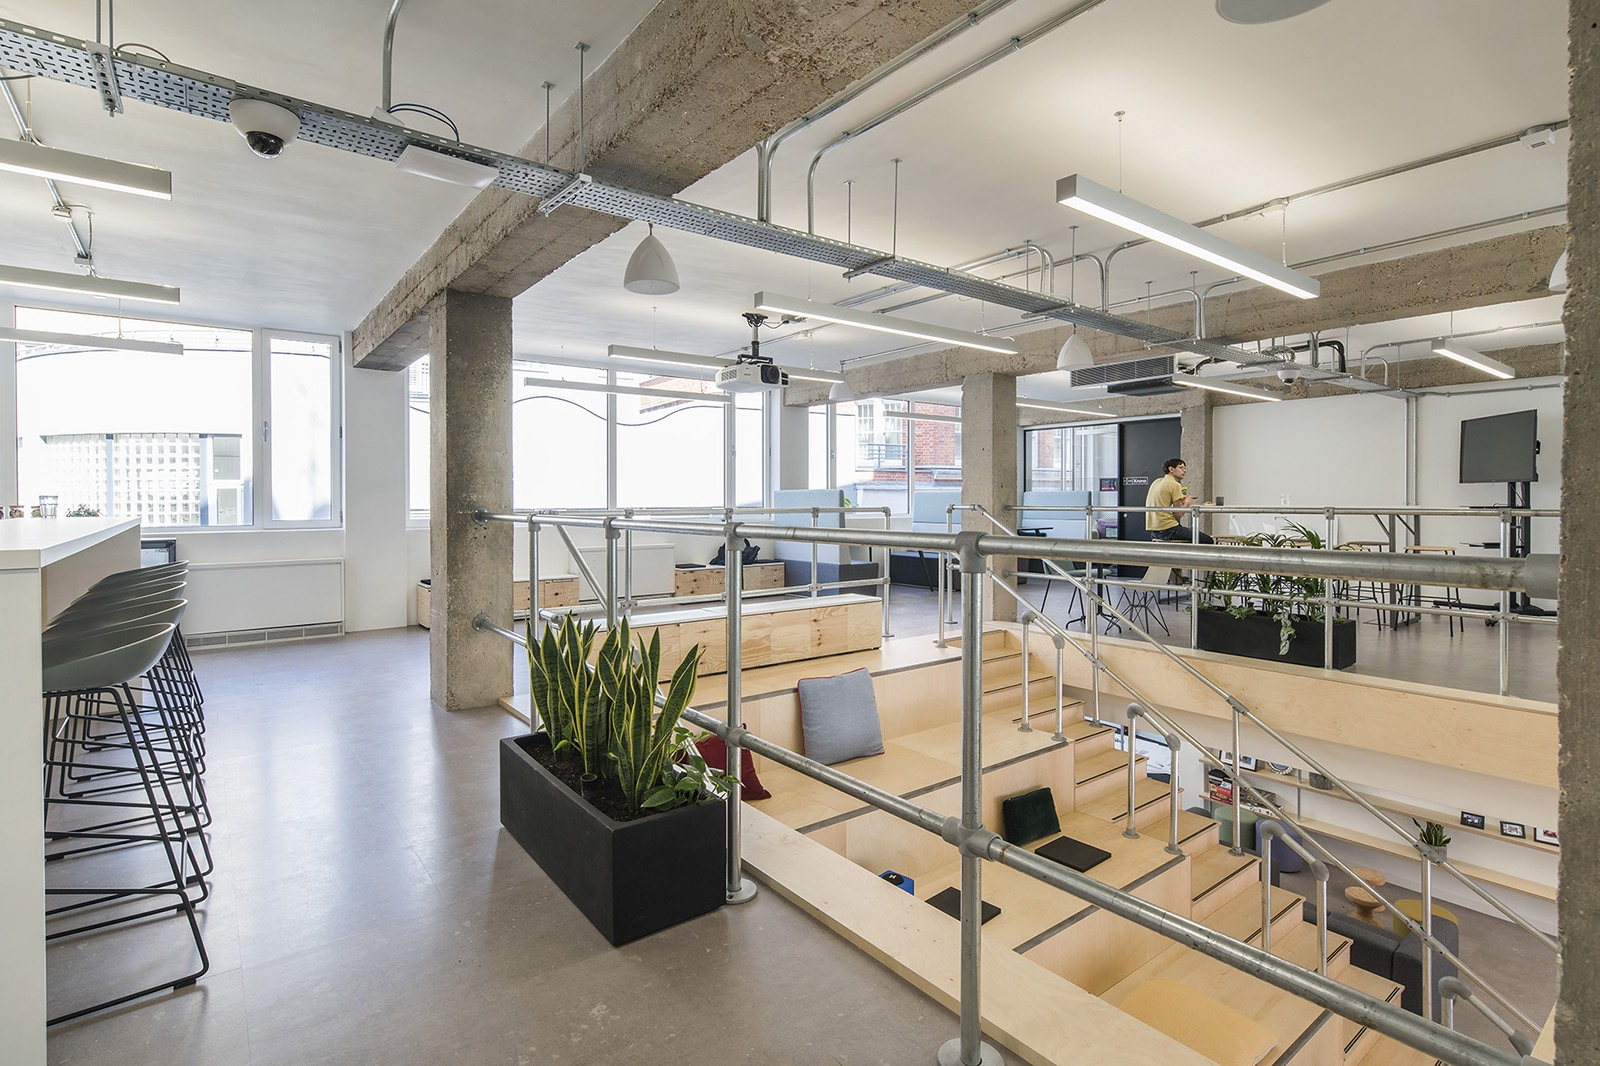 gocardless-london-office-16